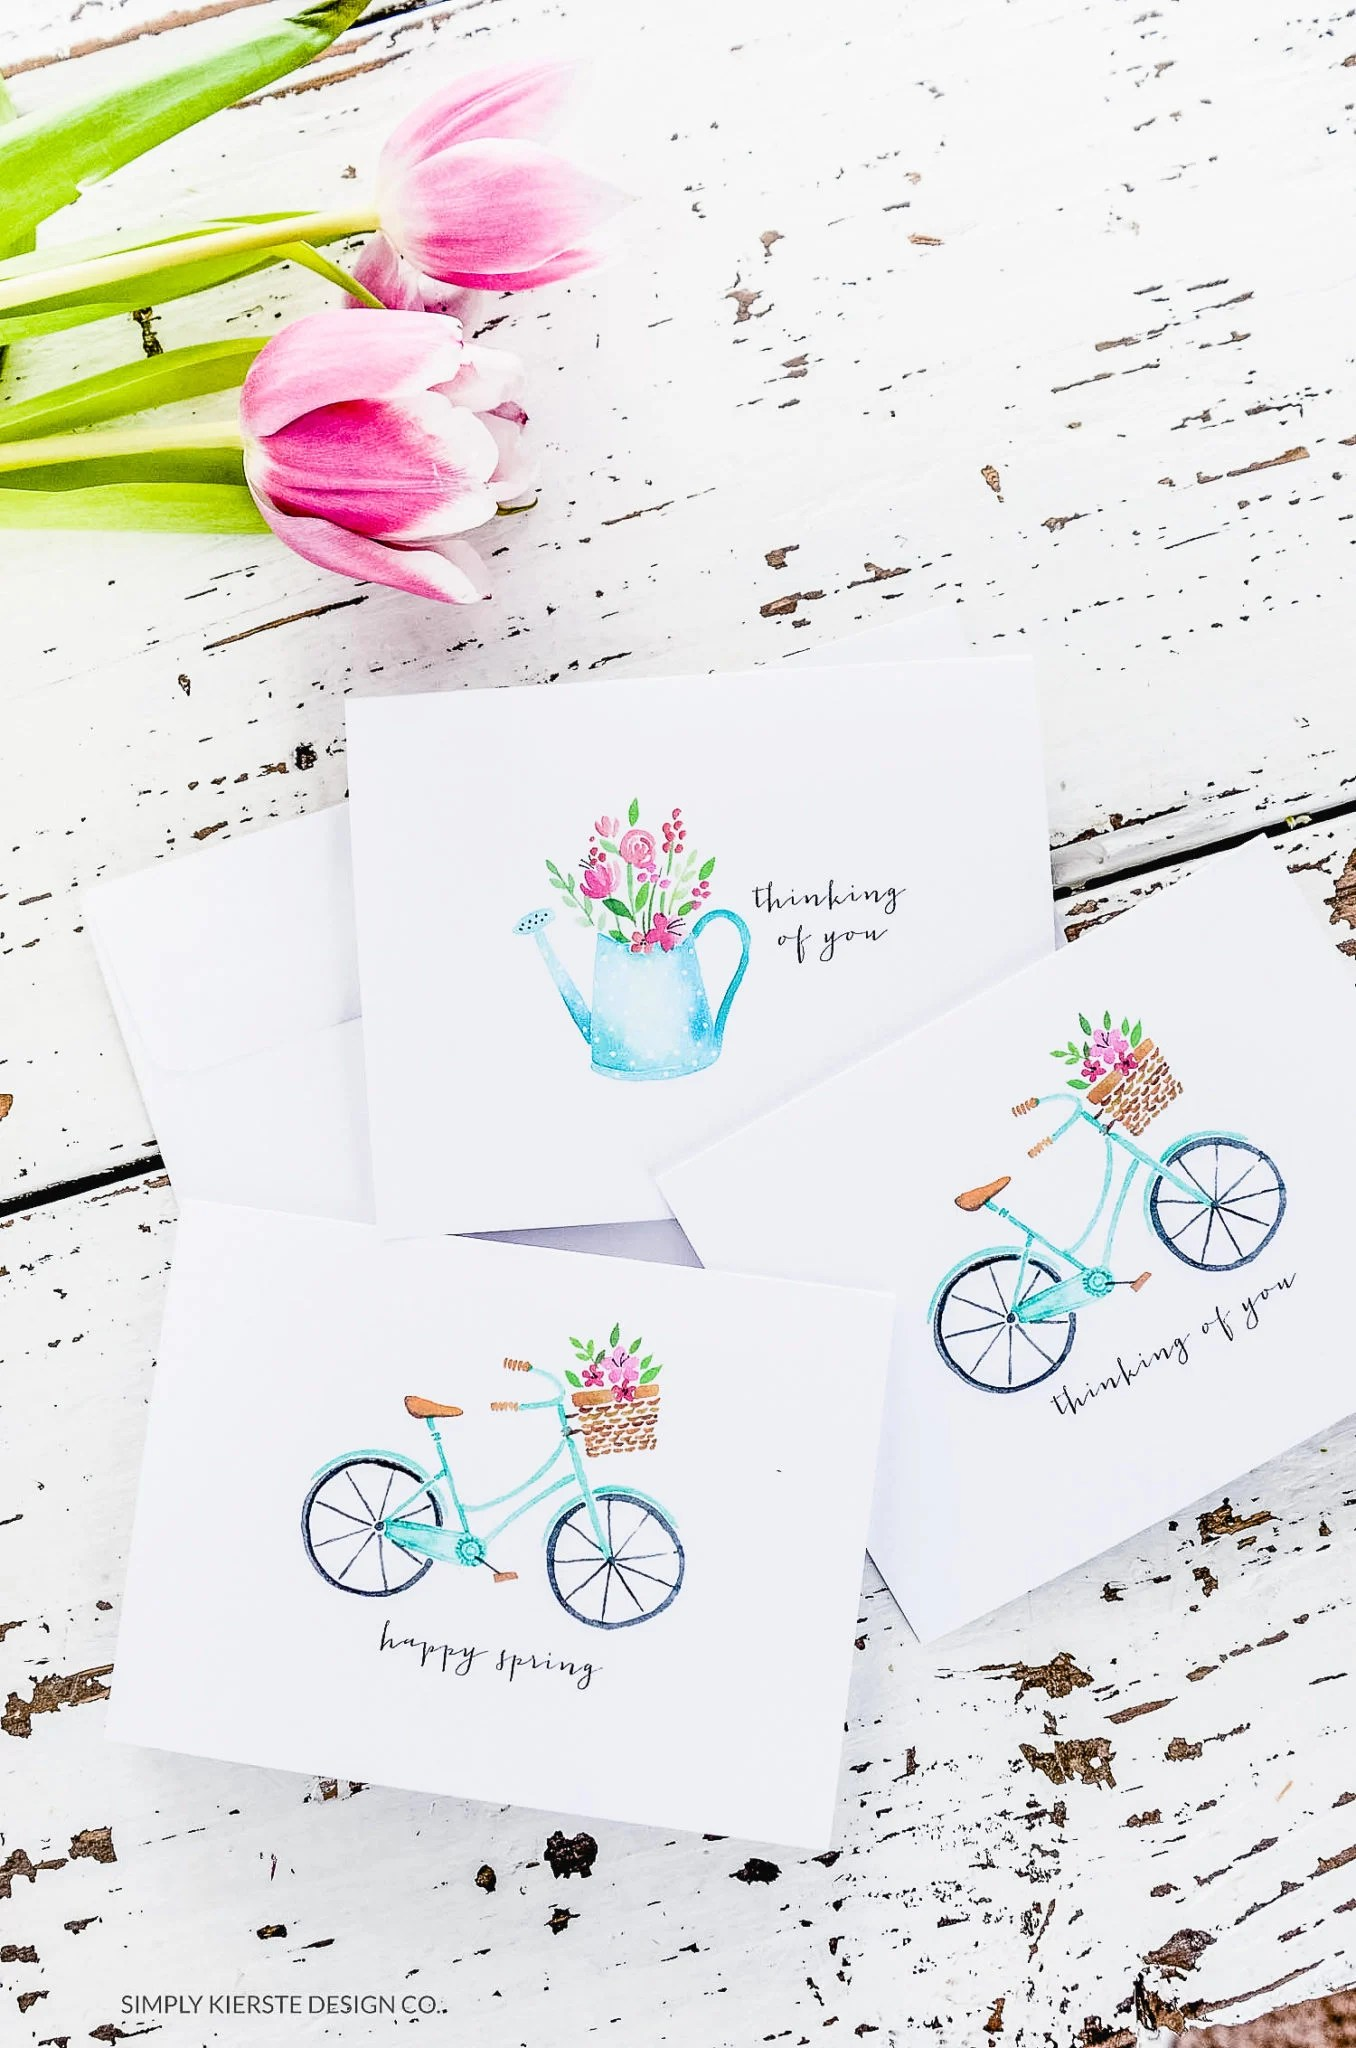 Spring Notecards | Vintage Notecards | Thinking of You | oldsaltfarm.com